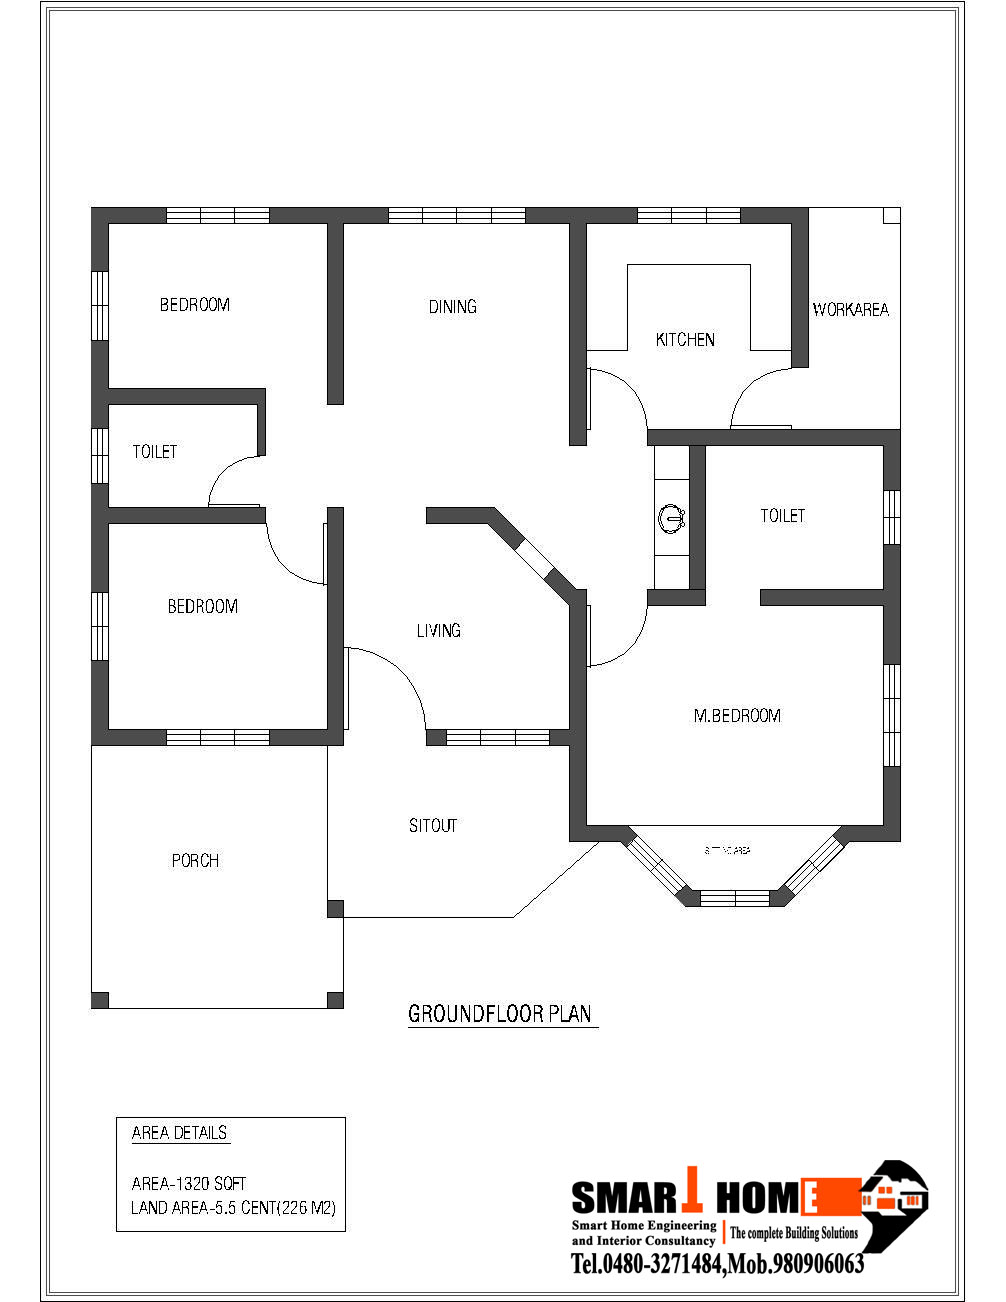 House Floor Plans Of House Photos And Plans